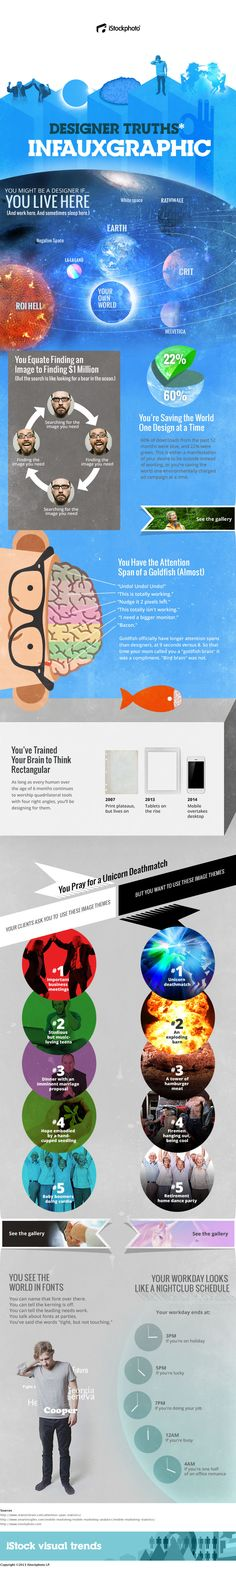 You're Saving the World One Design at a Time - Designer Truths Infauxgraphic! by iStockphoto Webdesign Inspiration, Graphic Design Inspiration, Web Design, Design Trends, Information Graphics, Data Visualization, Design Reference, Funny Design, Typography Design